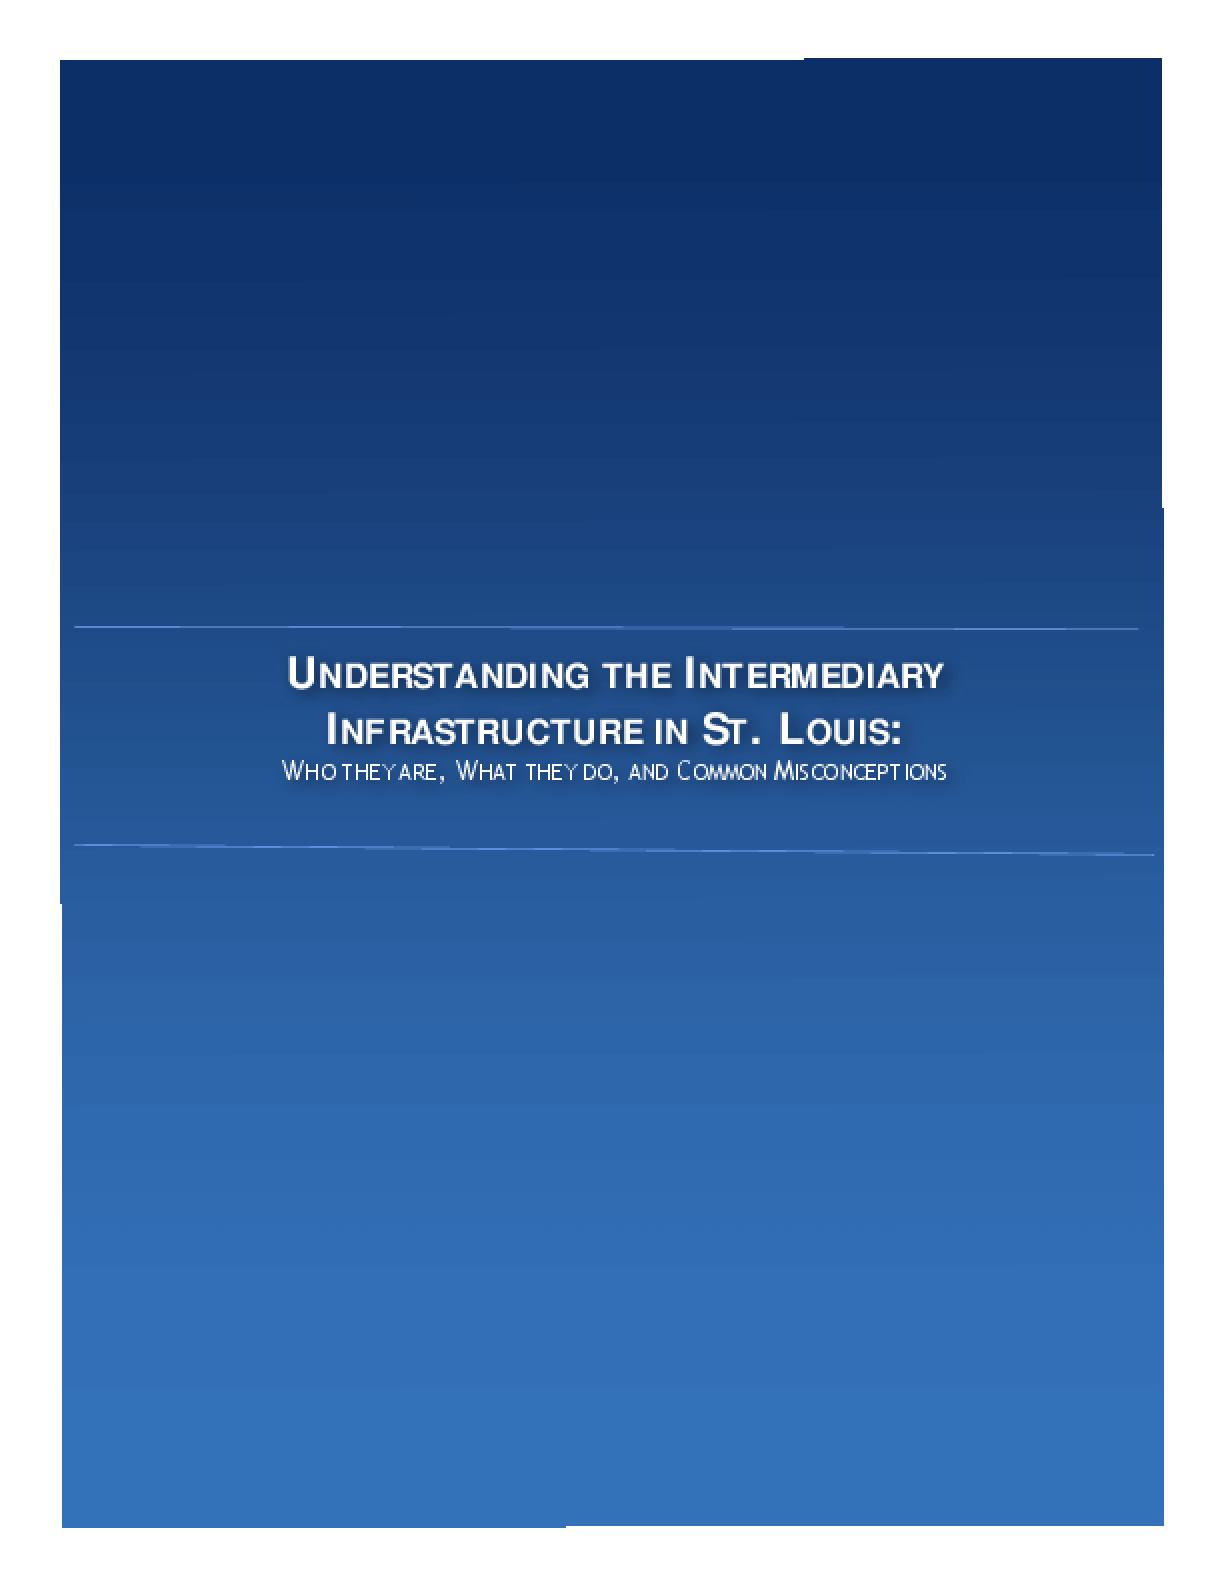 Understand the Intermediary Infrastructure in St. Louis: Who they are, What they do, and Common Misconceptions